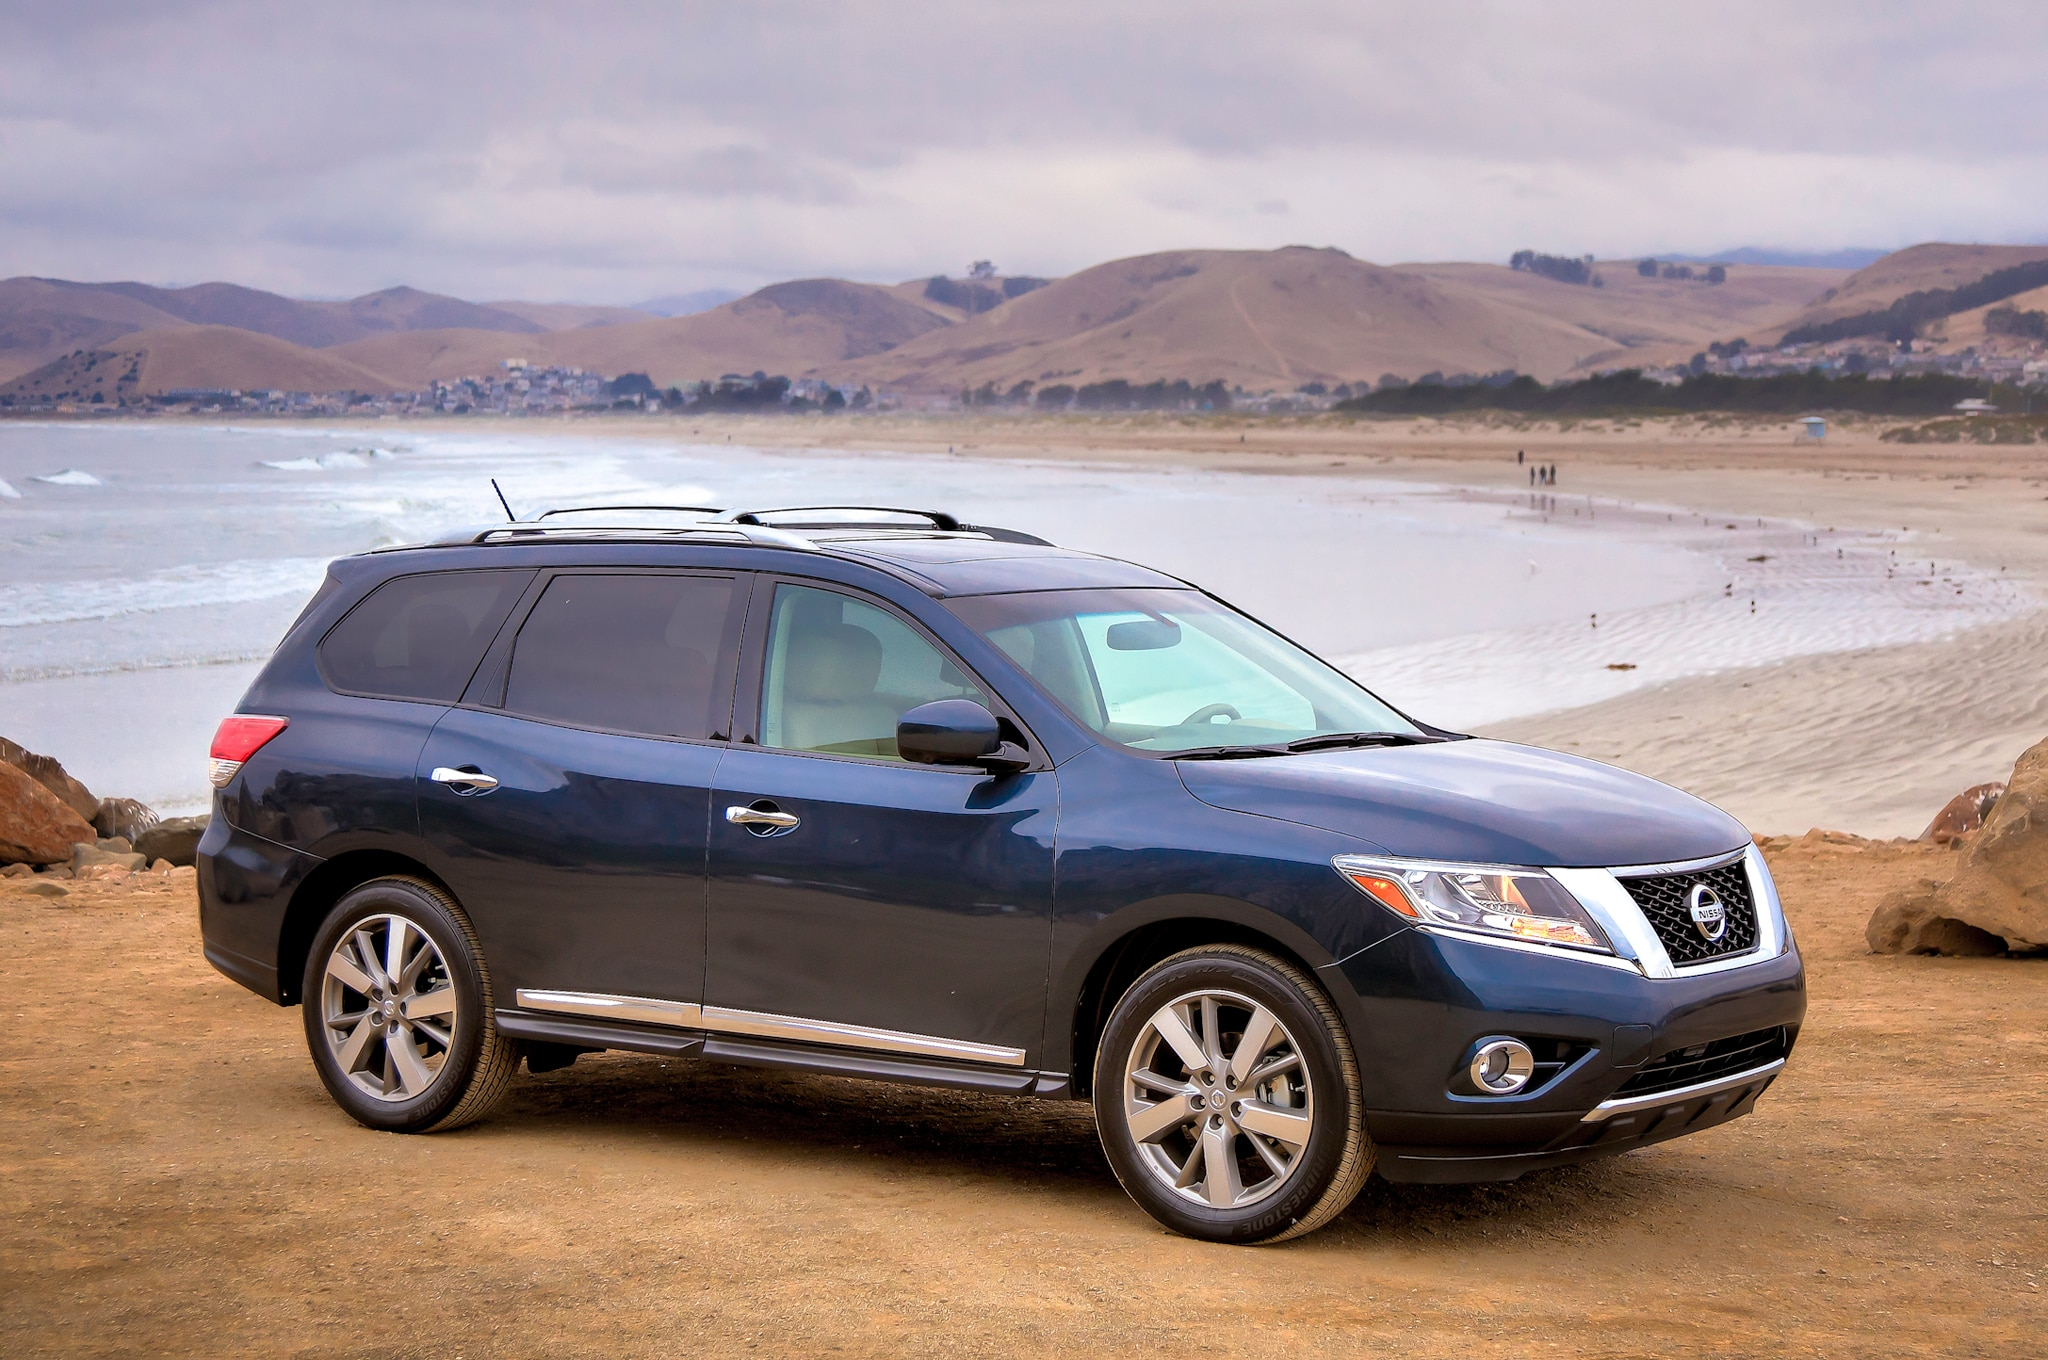 2014 nissan pathfinder hybrid priced from 35 970. Black Bedroom Furniture Sets. Home Design Ideas